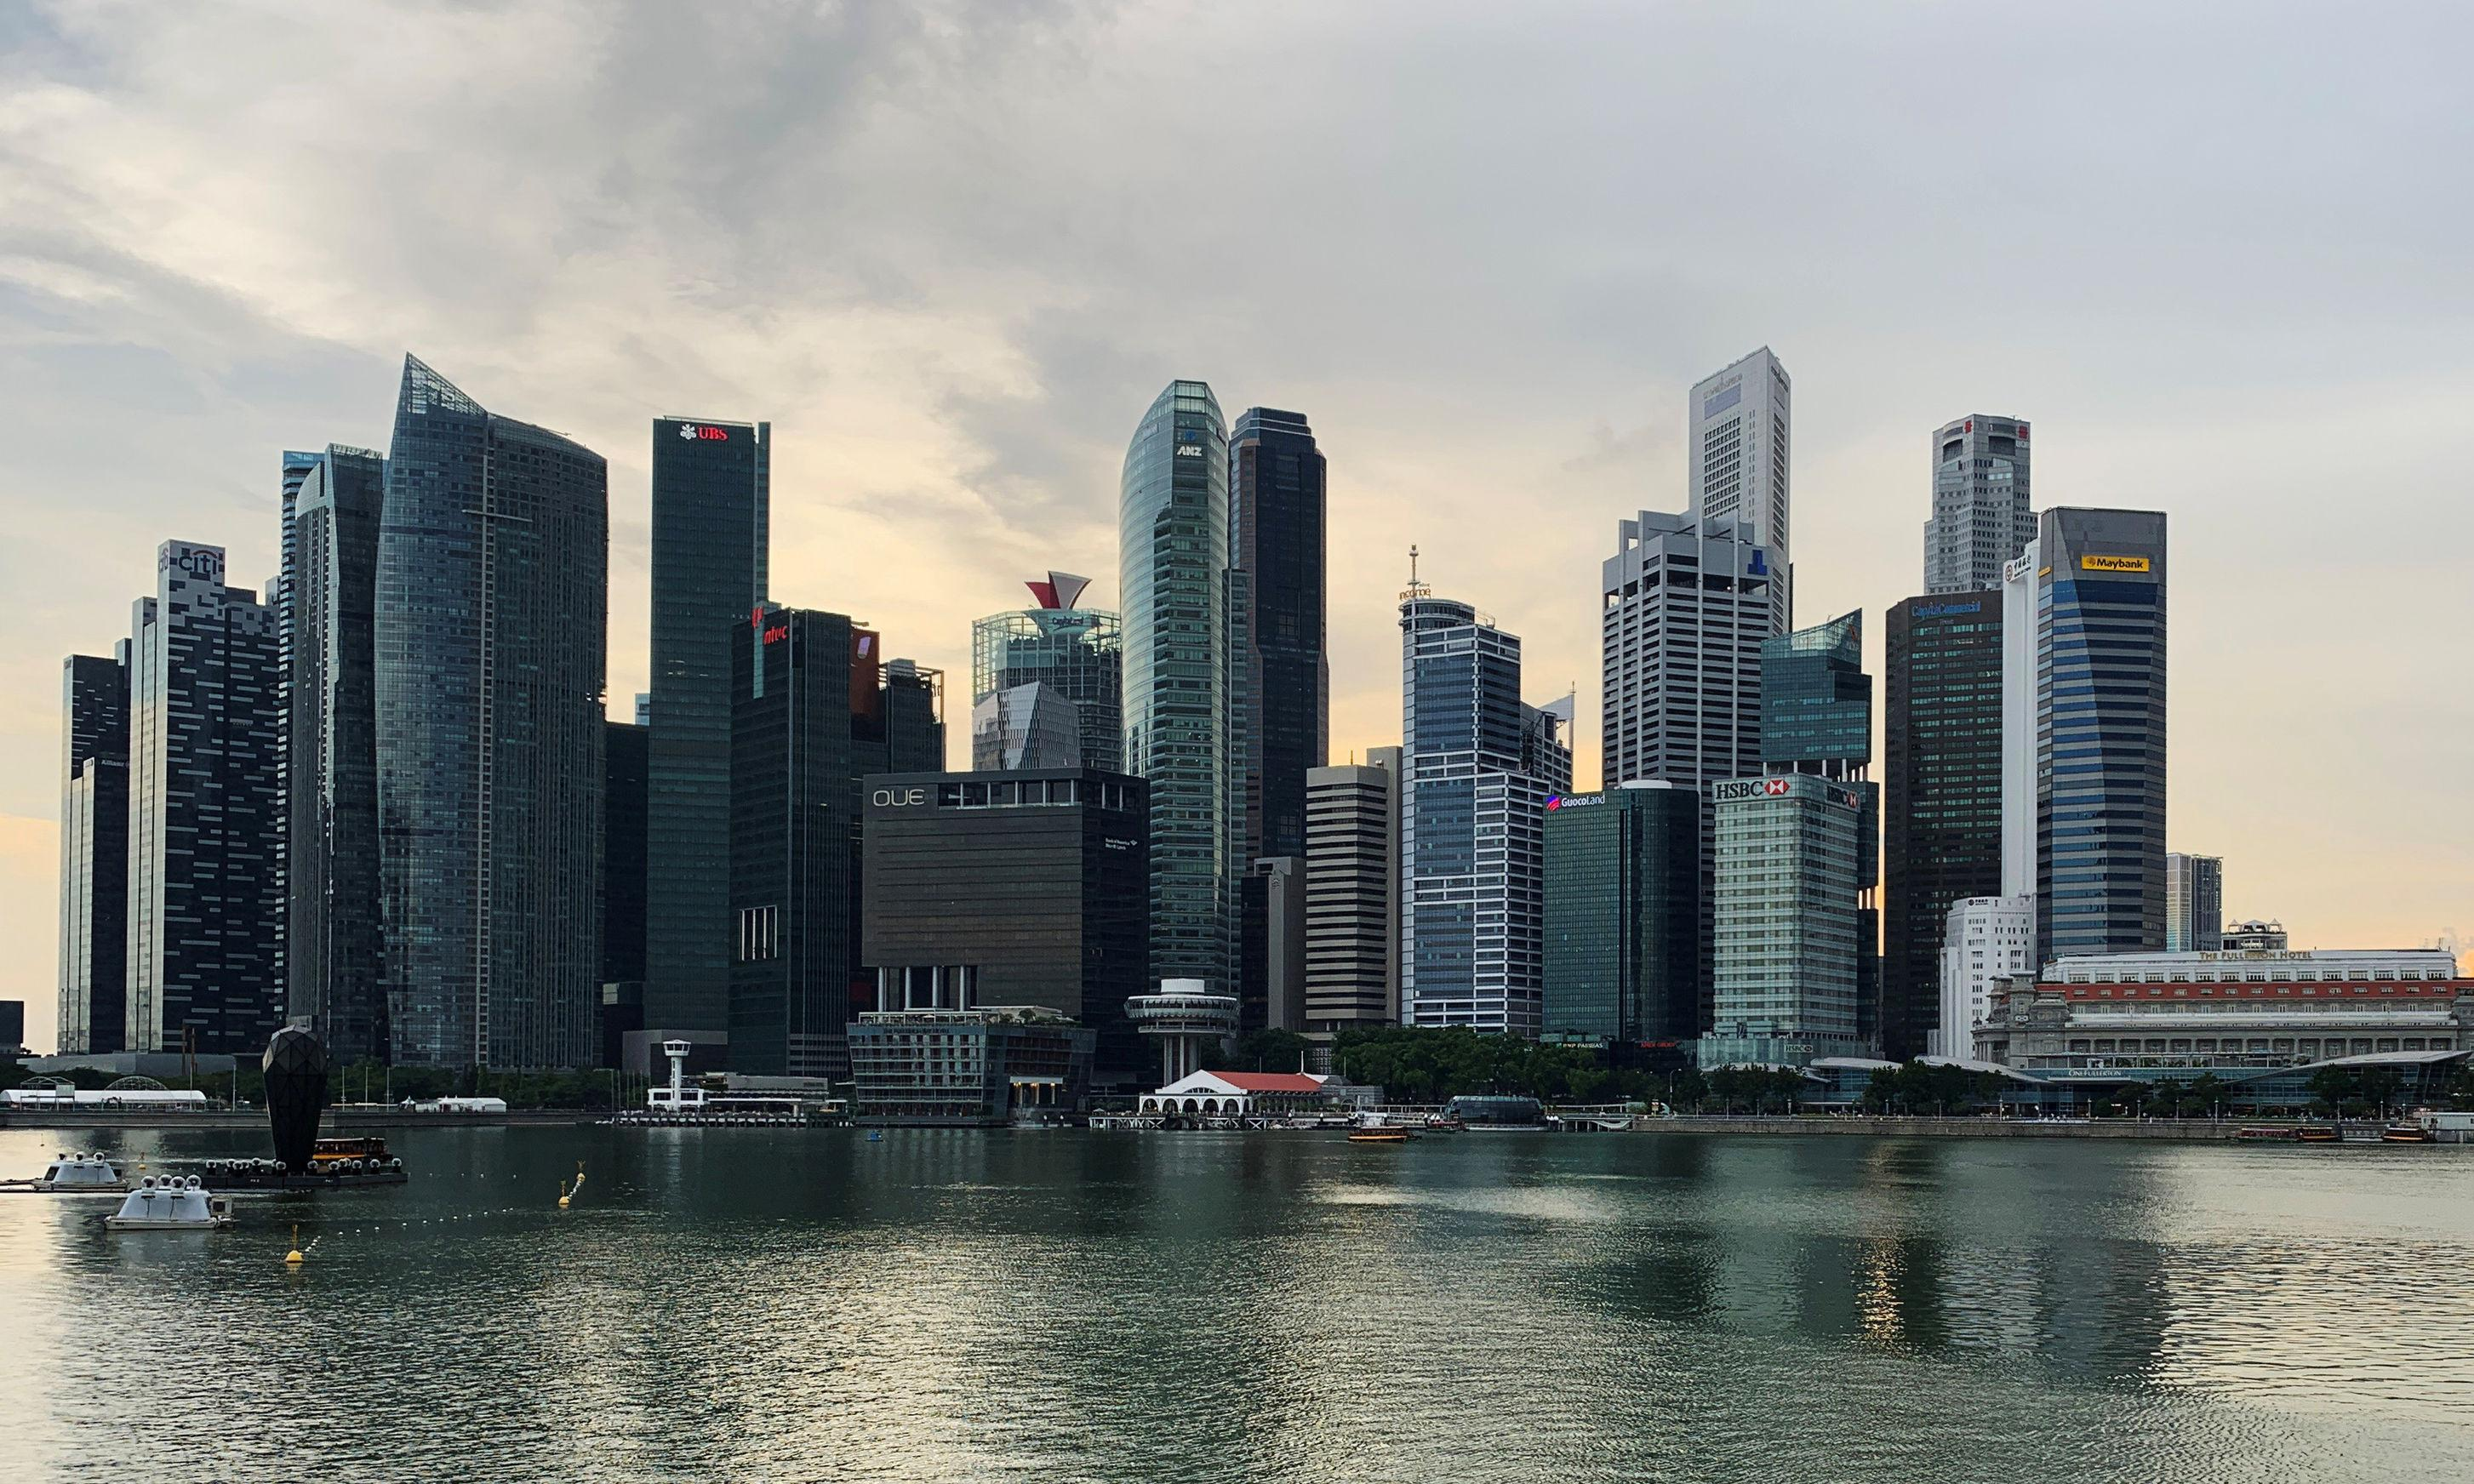 'Chilling': Singapore's 'fake news' law comes into effect